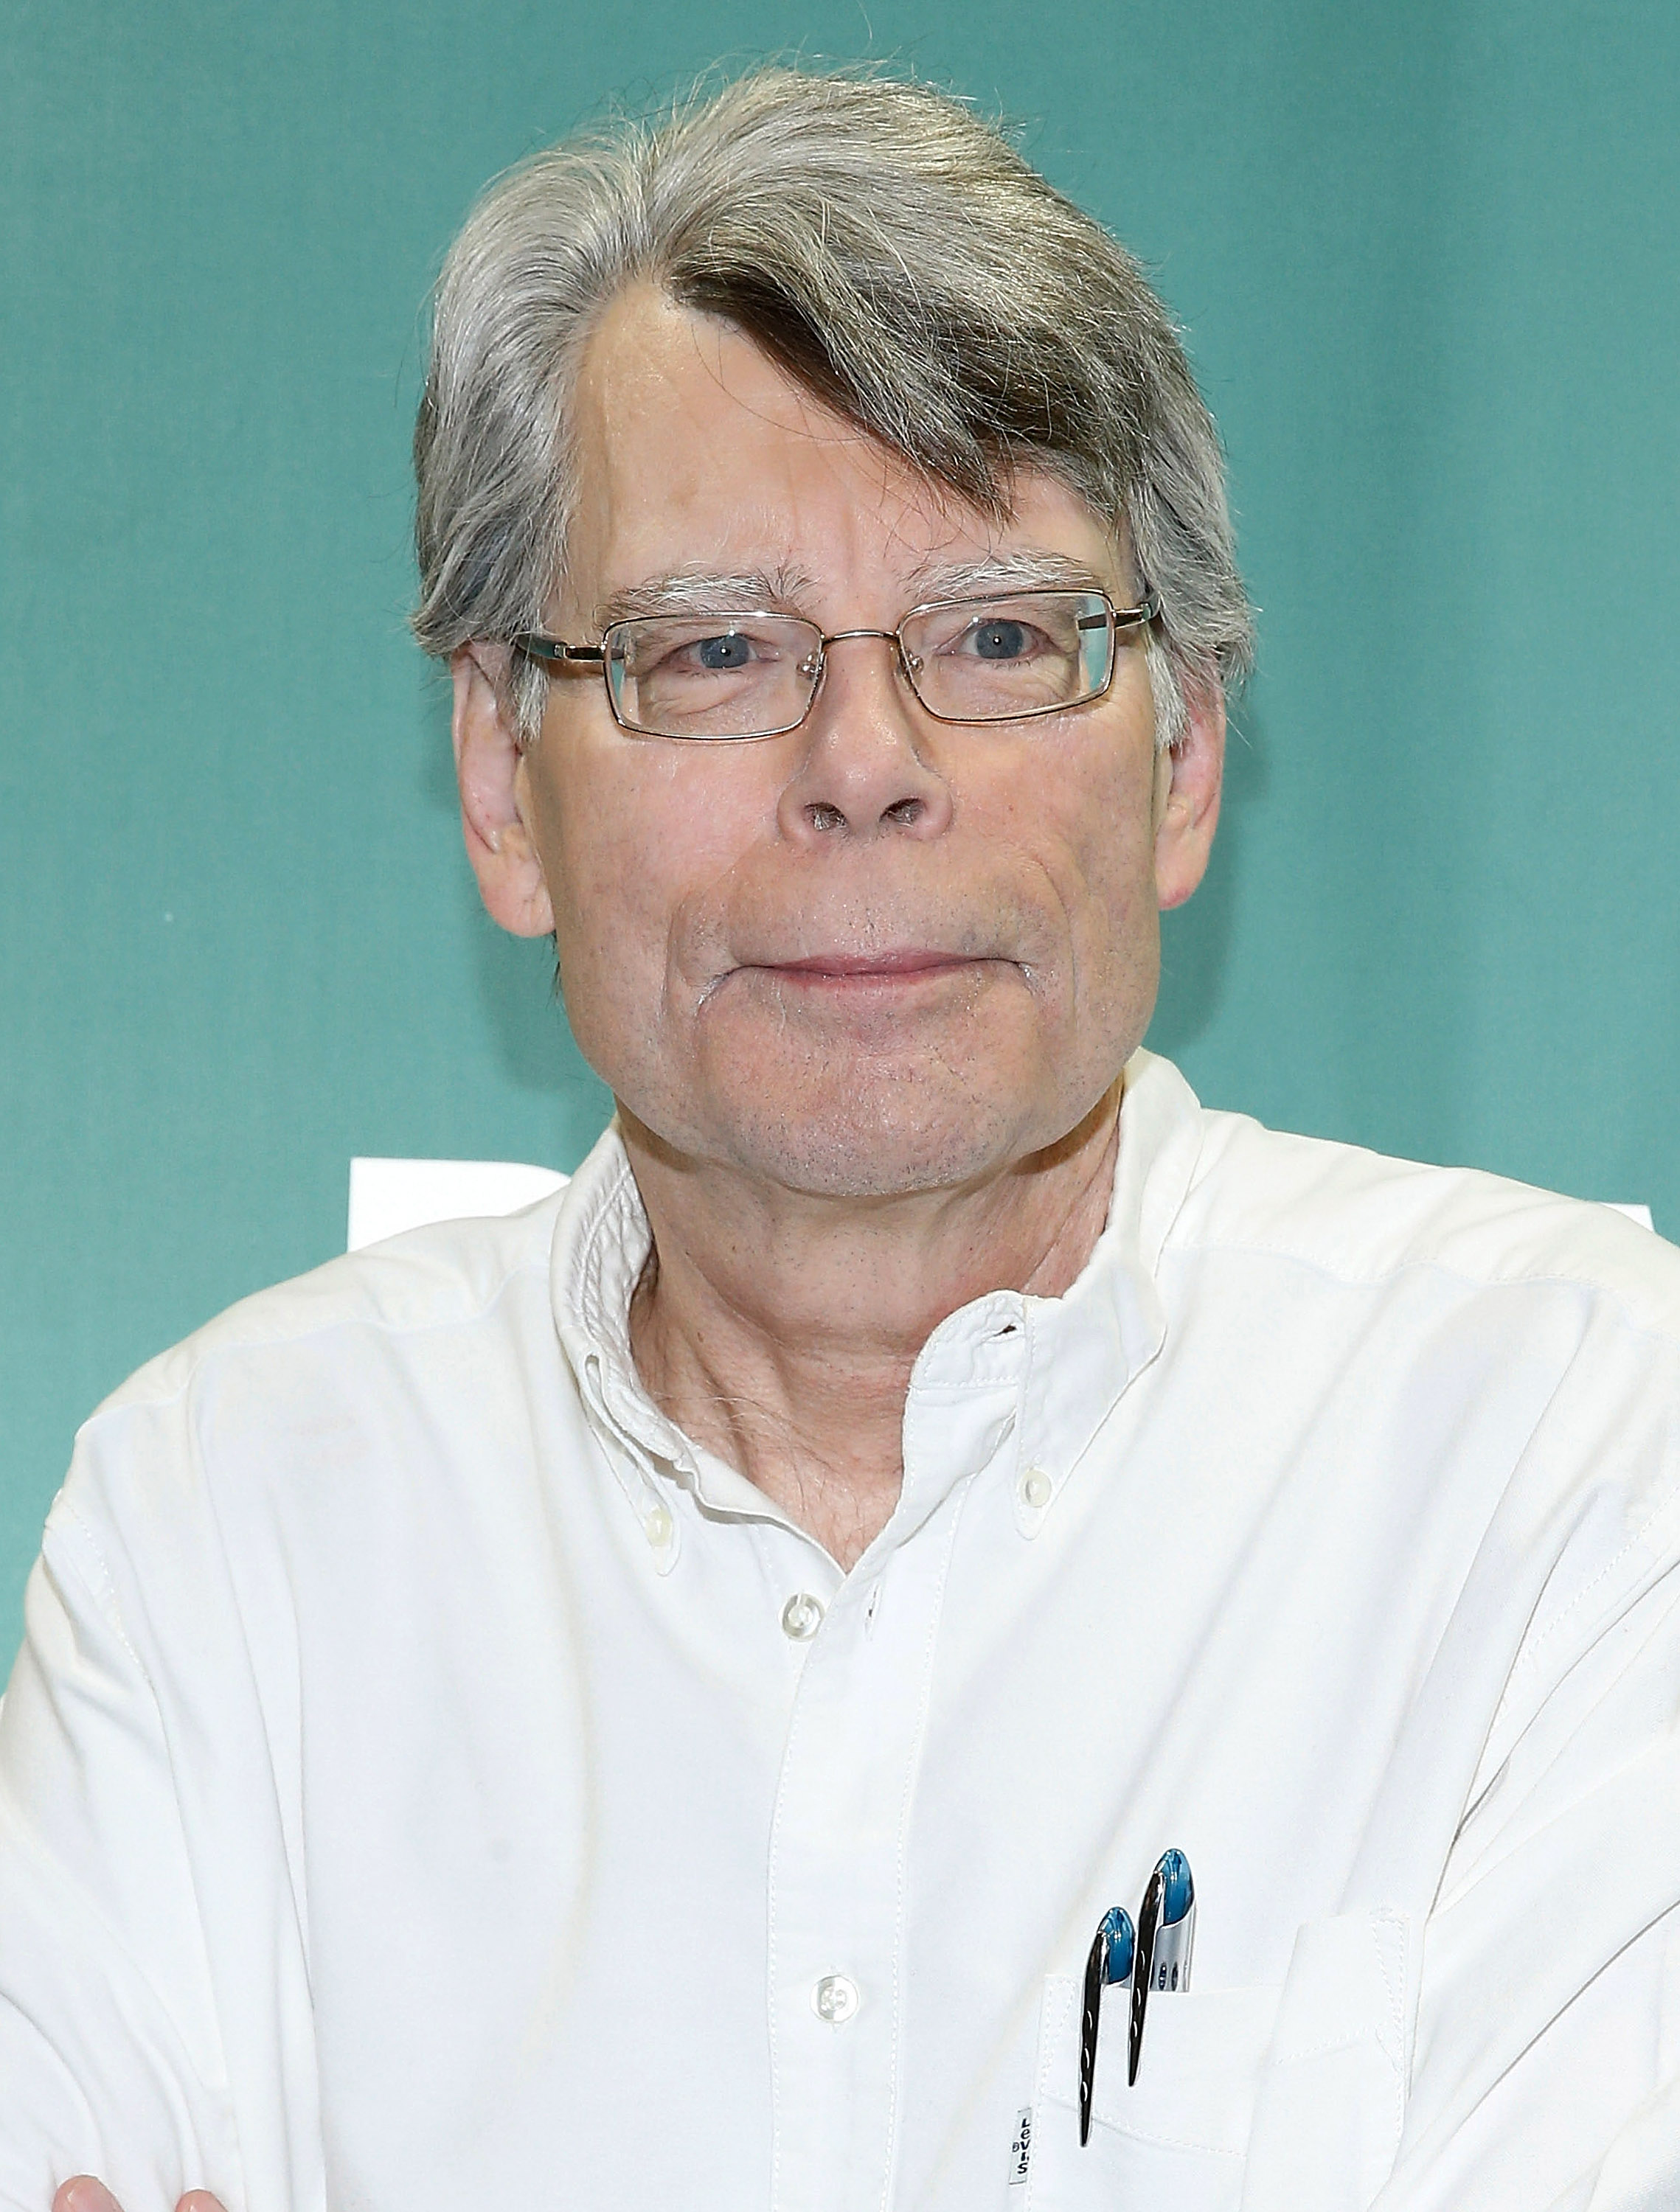 Stephen King signs copies of his book  Revival  in New York City on Nov. 11, 2014.